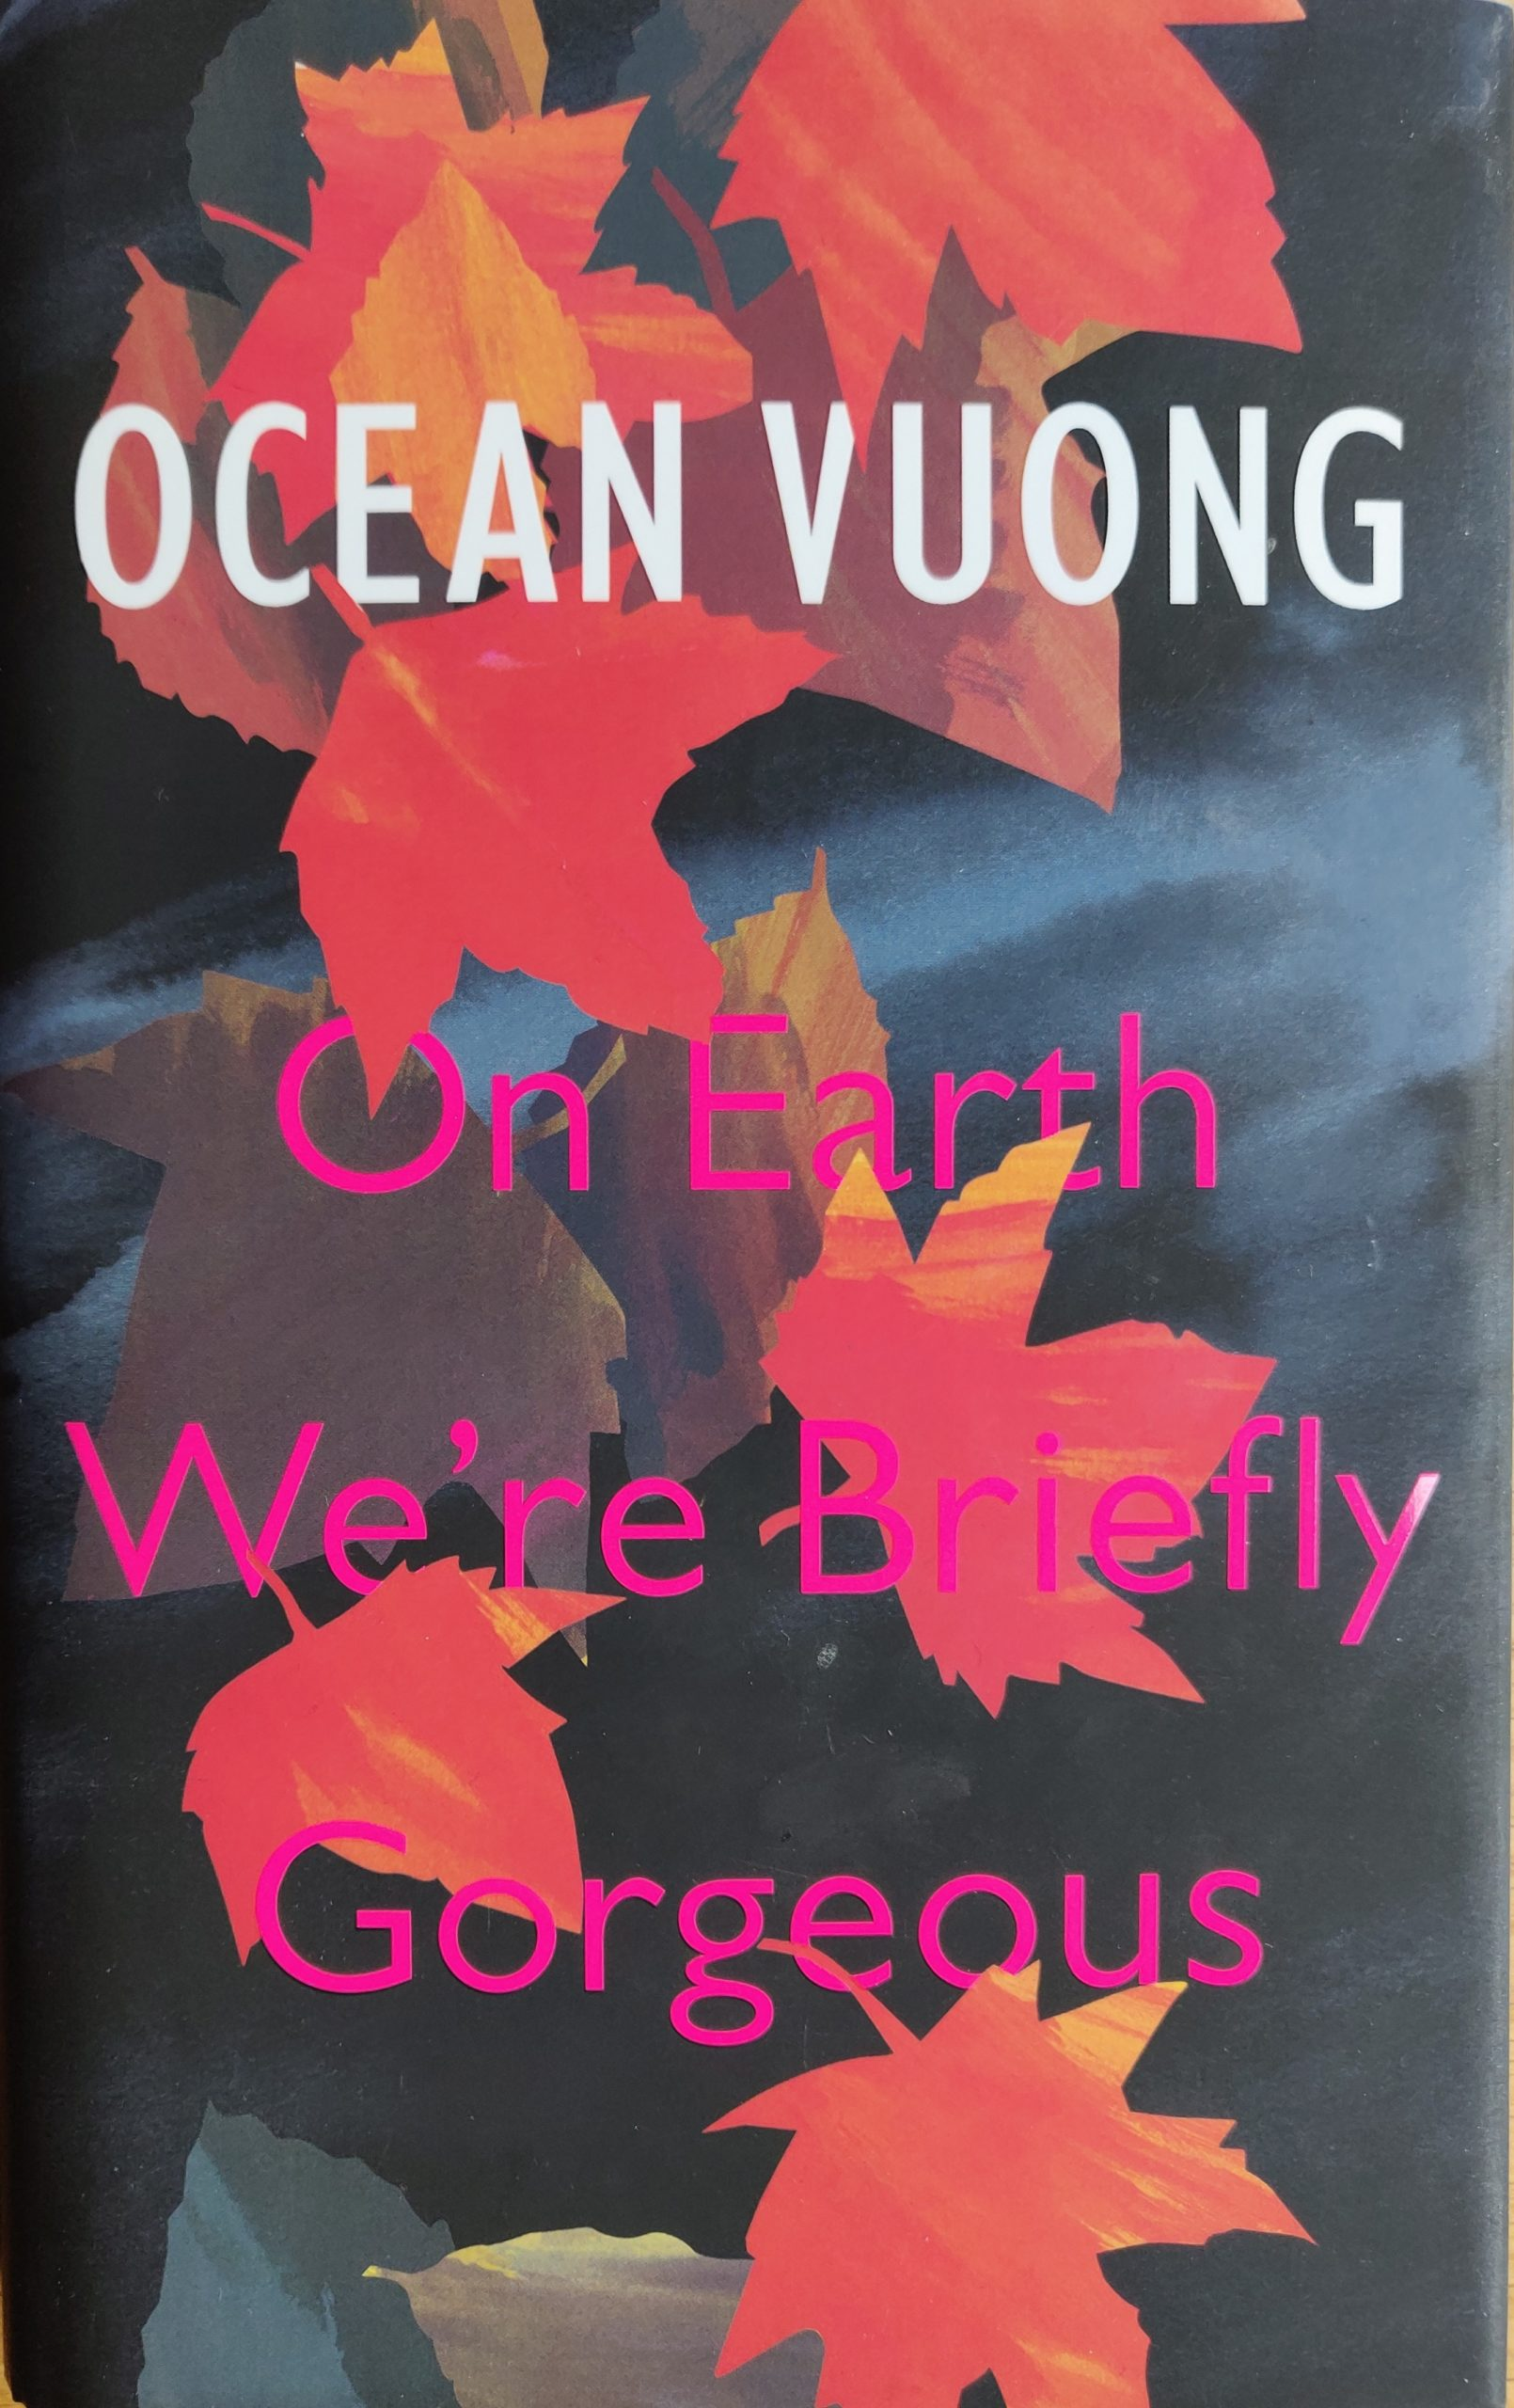 On Earth We're Briefly Gorgeous - Ocean Vuong (2019)